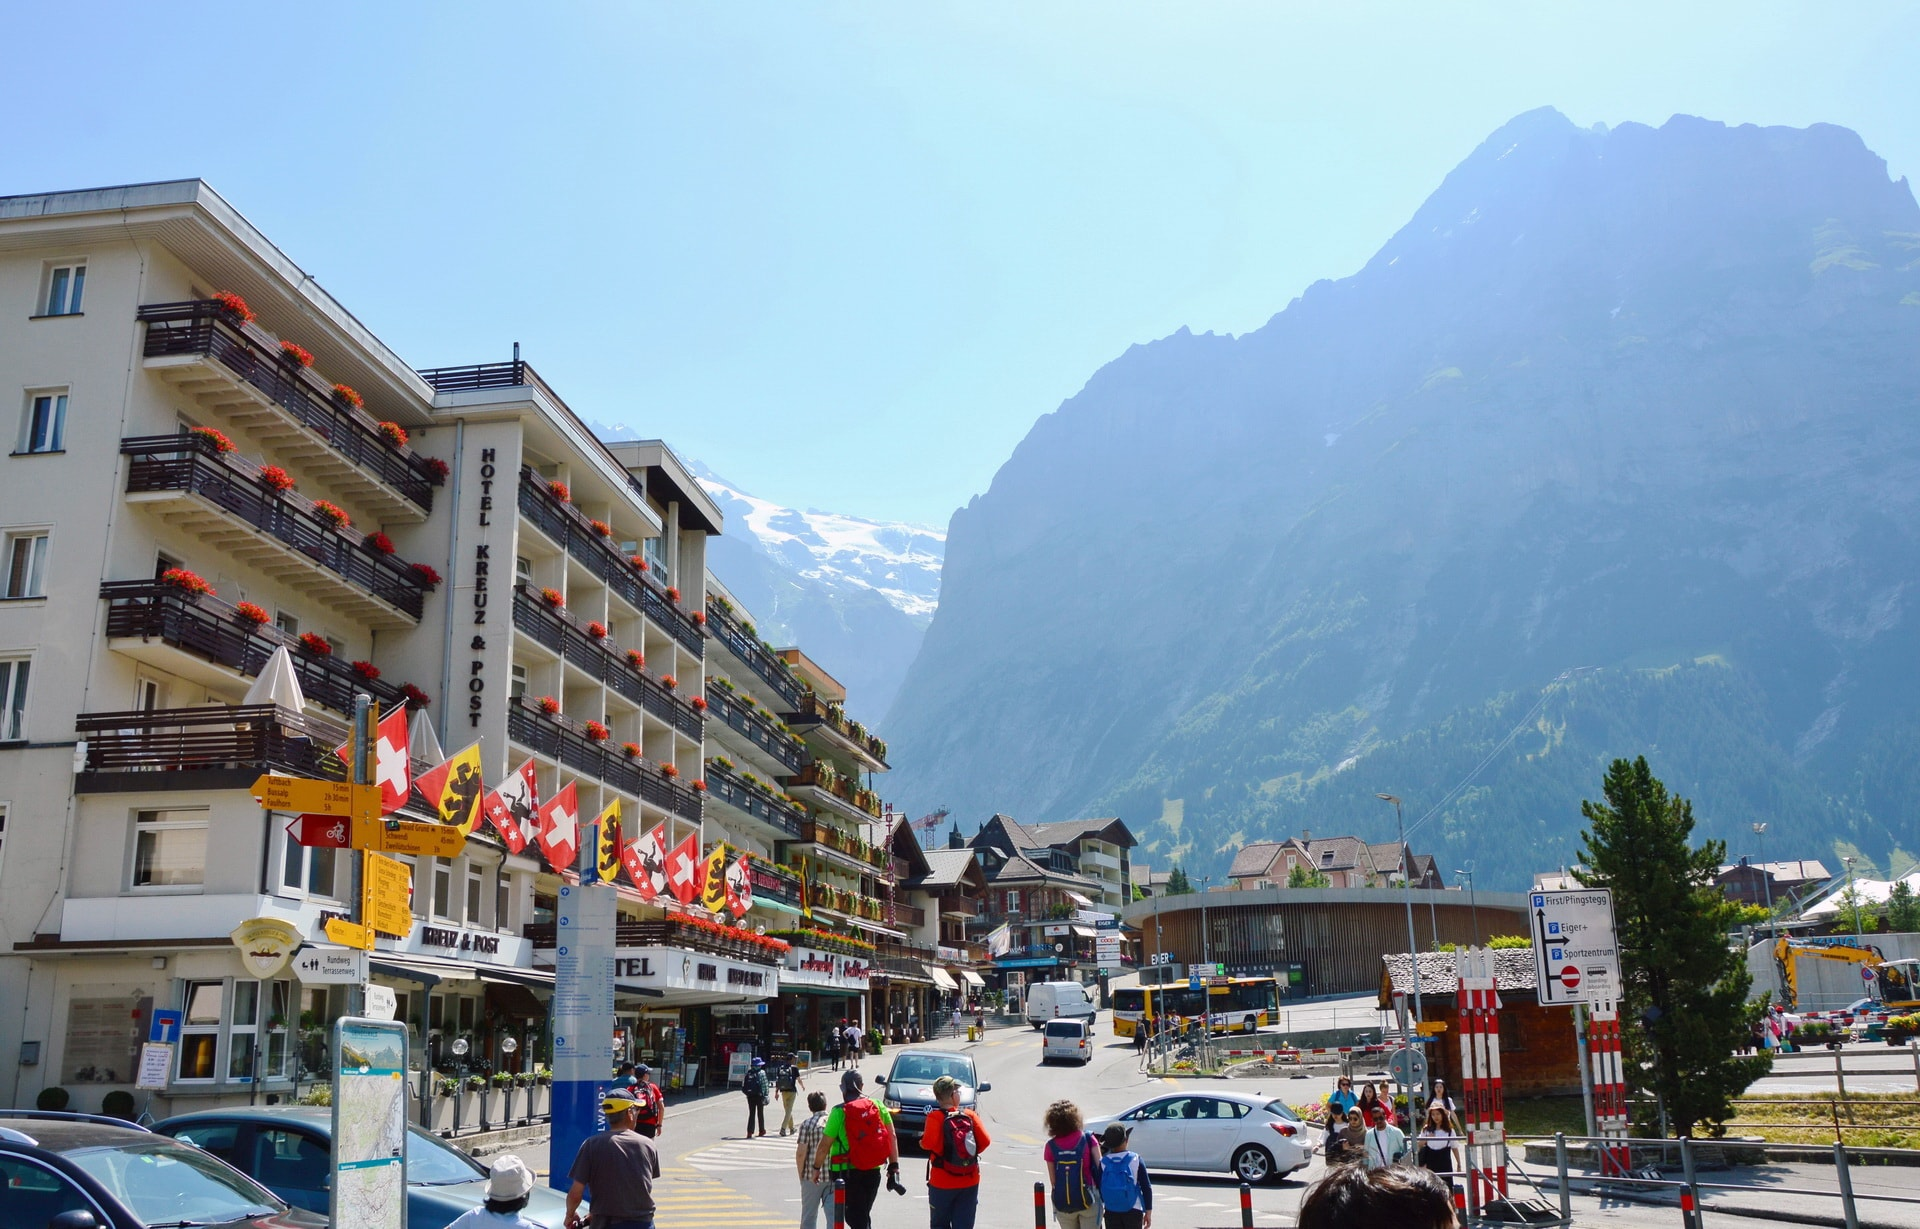 You have a couple of minutes to enjoy Grindelwald before going up